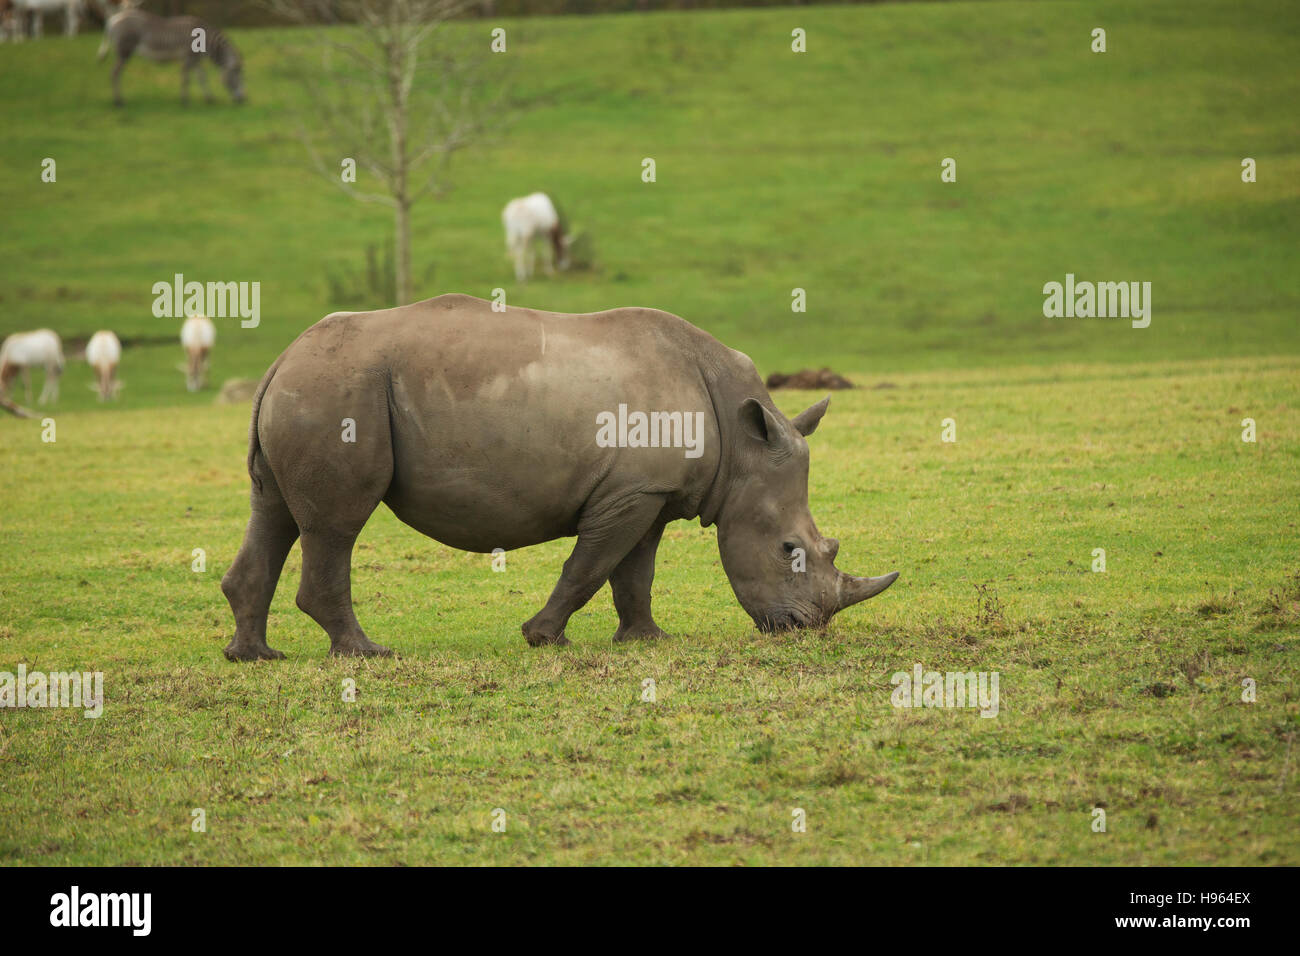 Rhinoceros grazing in a paddock at Marwell zoo in Hampshire England. - Stock Image